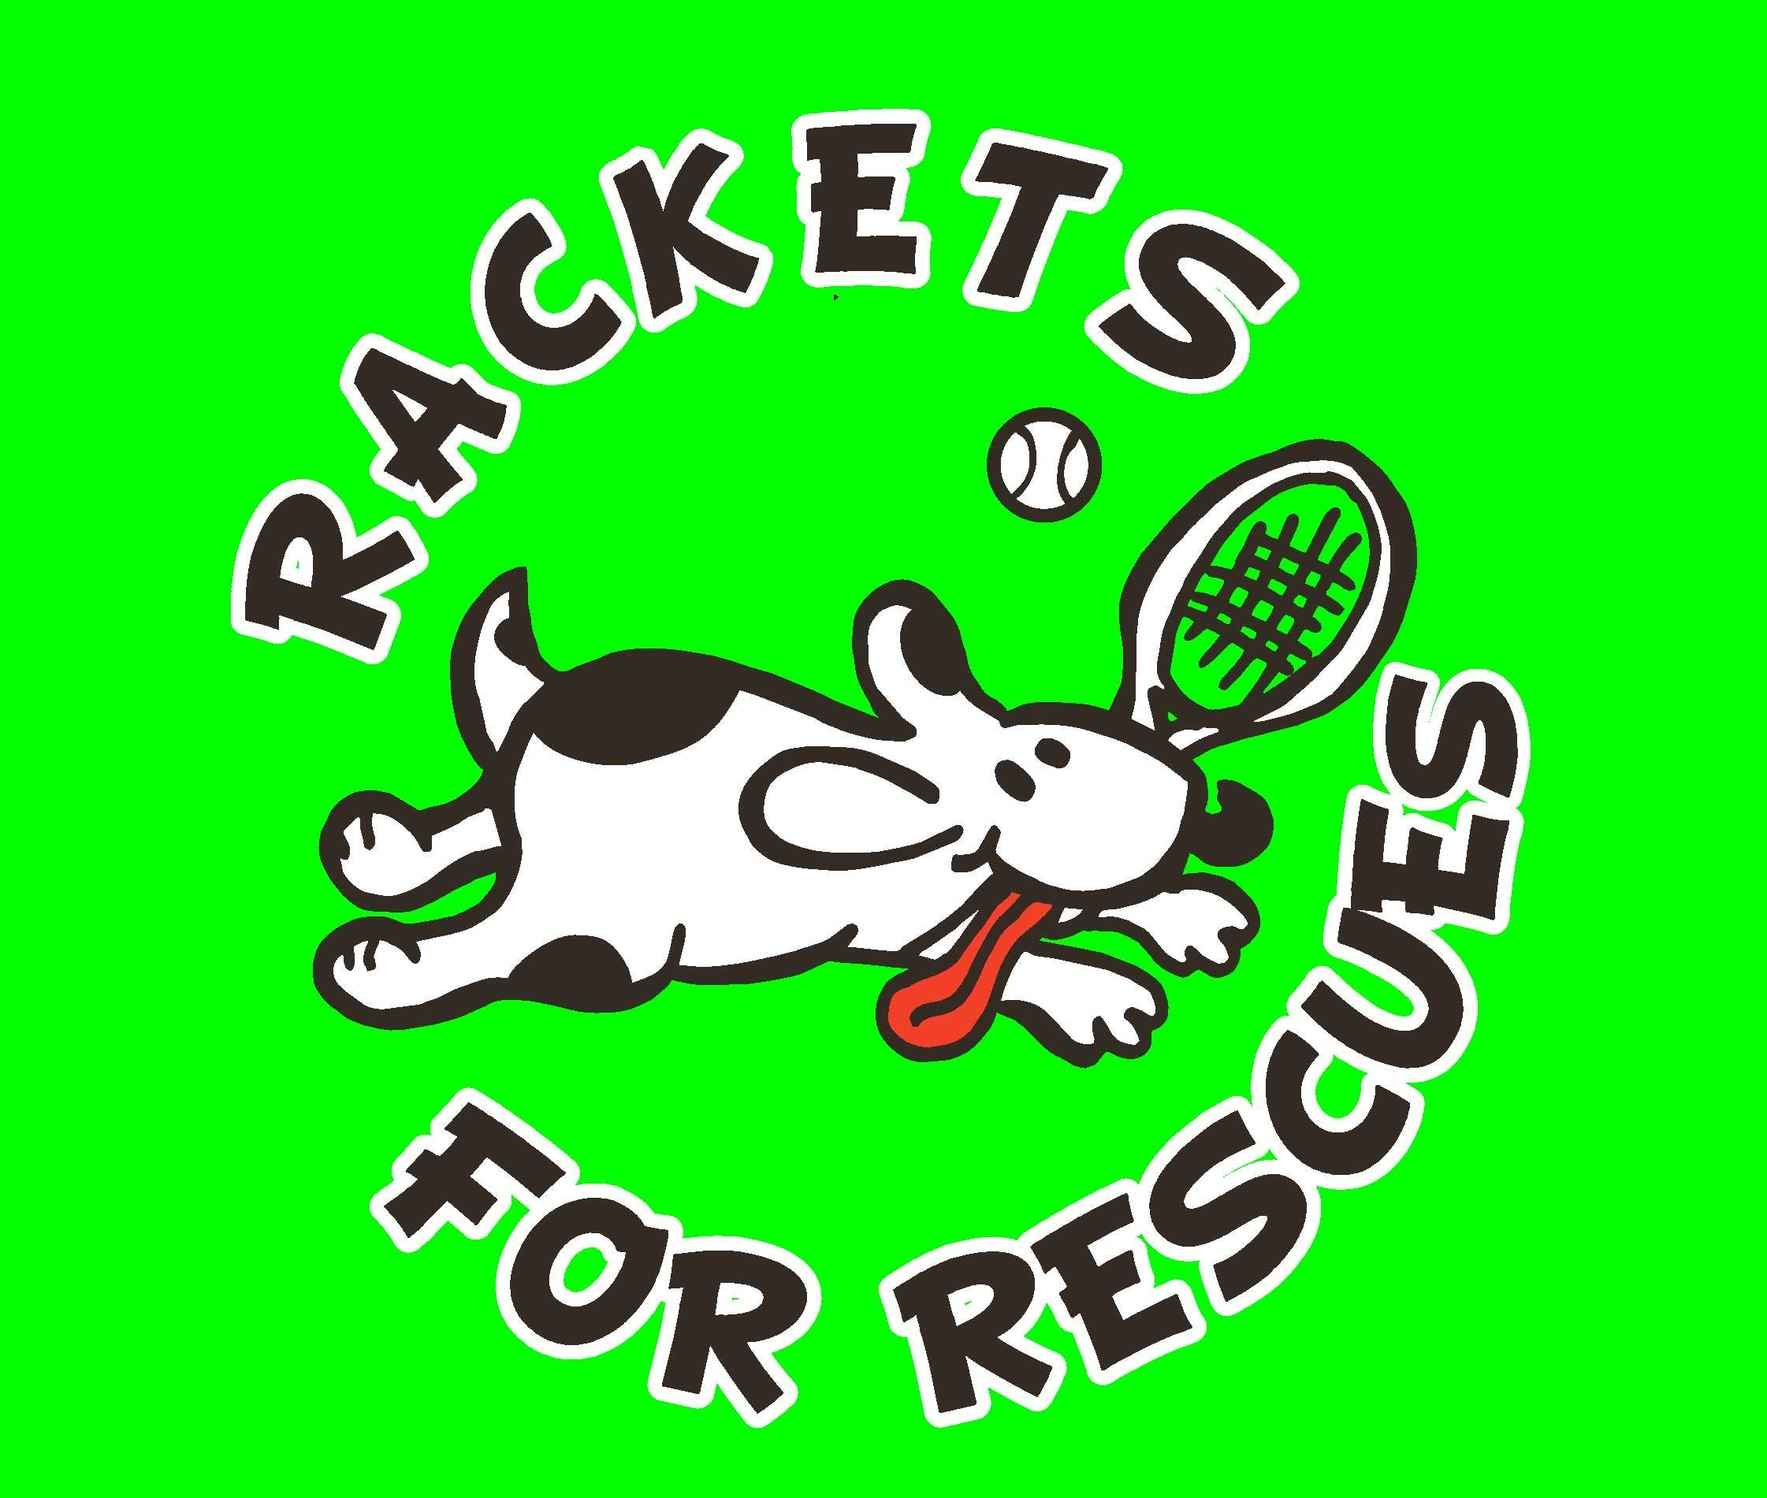 Rackets For Rescues image